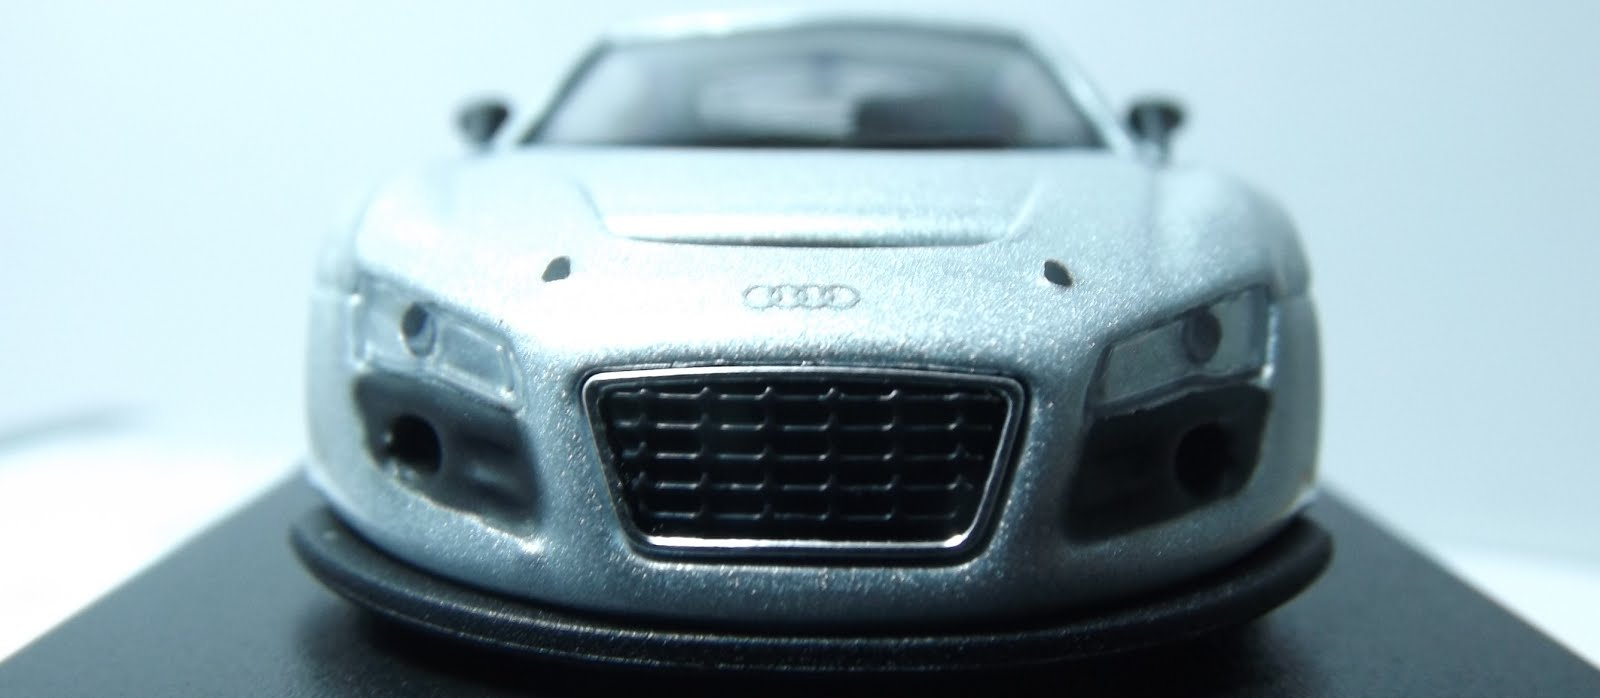 Diecast kyosho audi r8 lms front grill